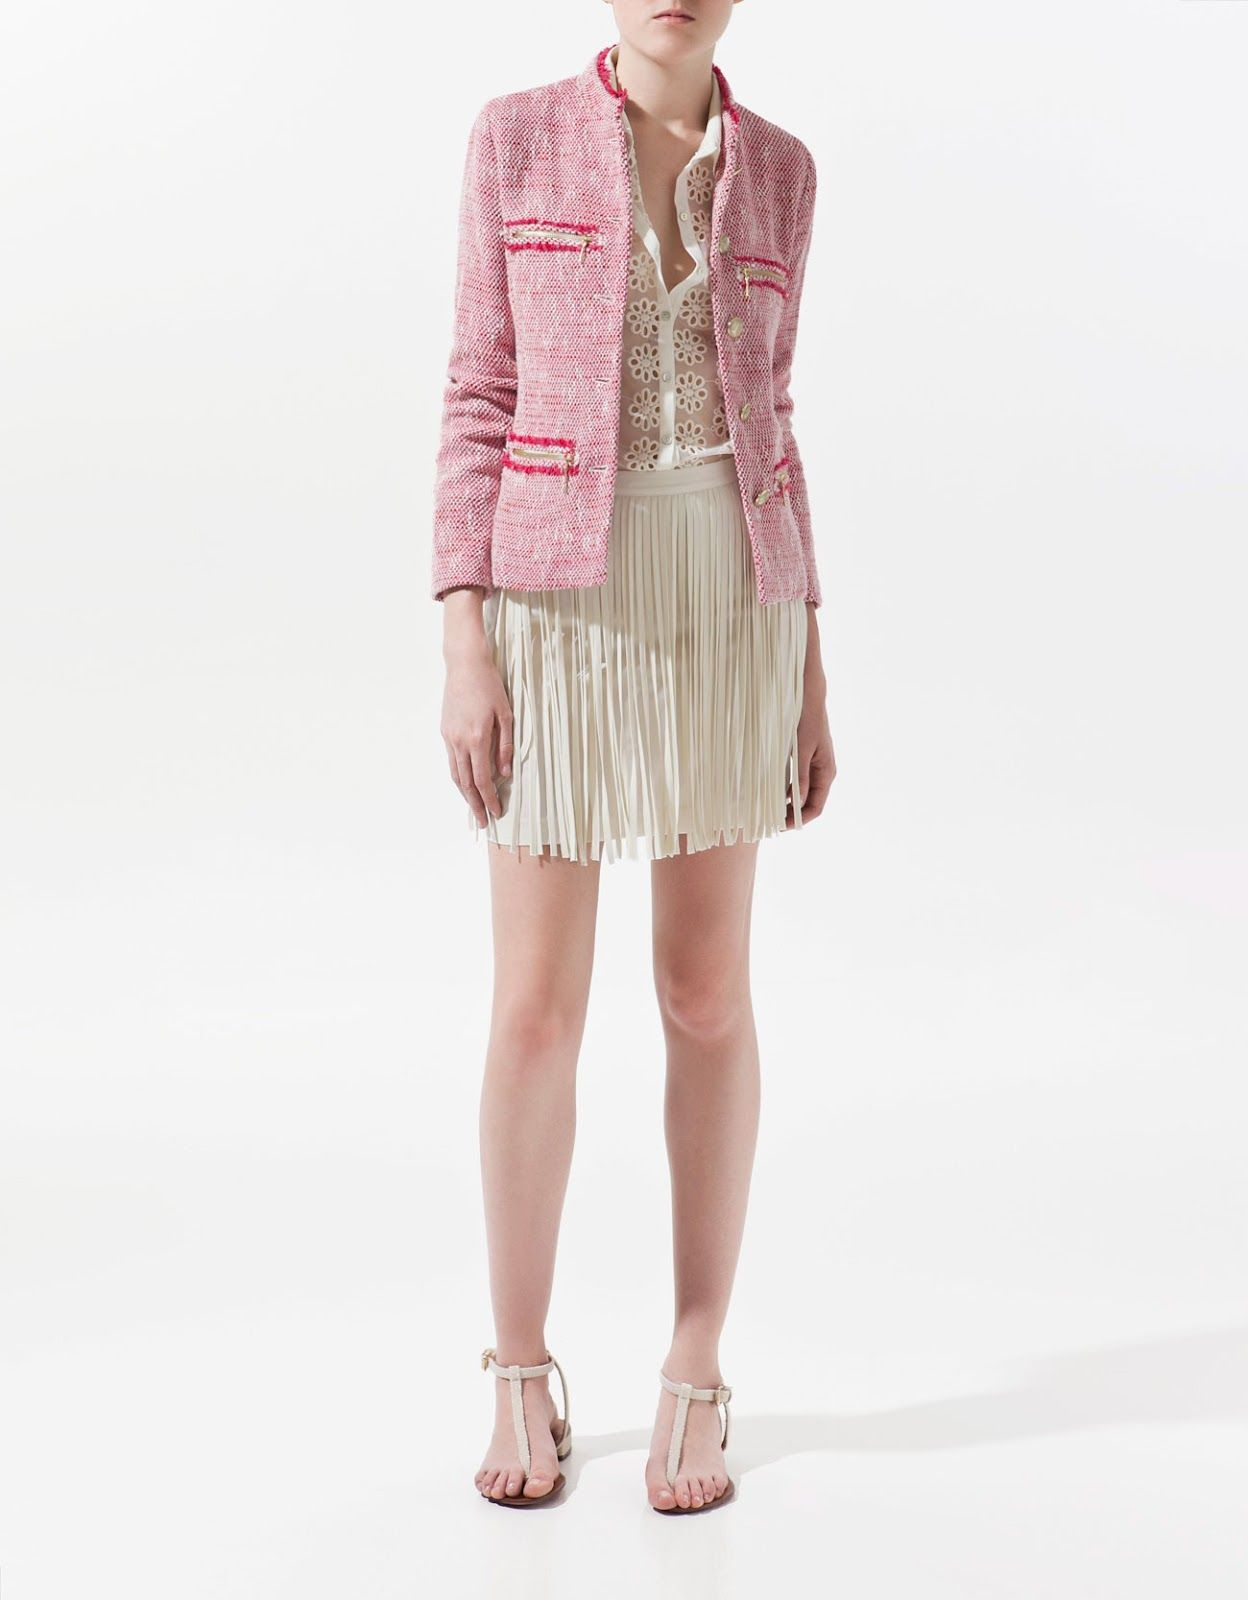 7e0b11c6f0b6 NWT ZARA Pink Boucle Tweed Chanel Military Gold Button Blazer Jacket ...